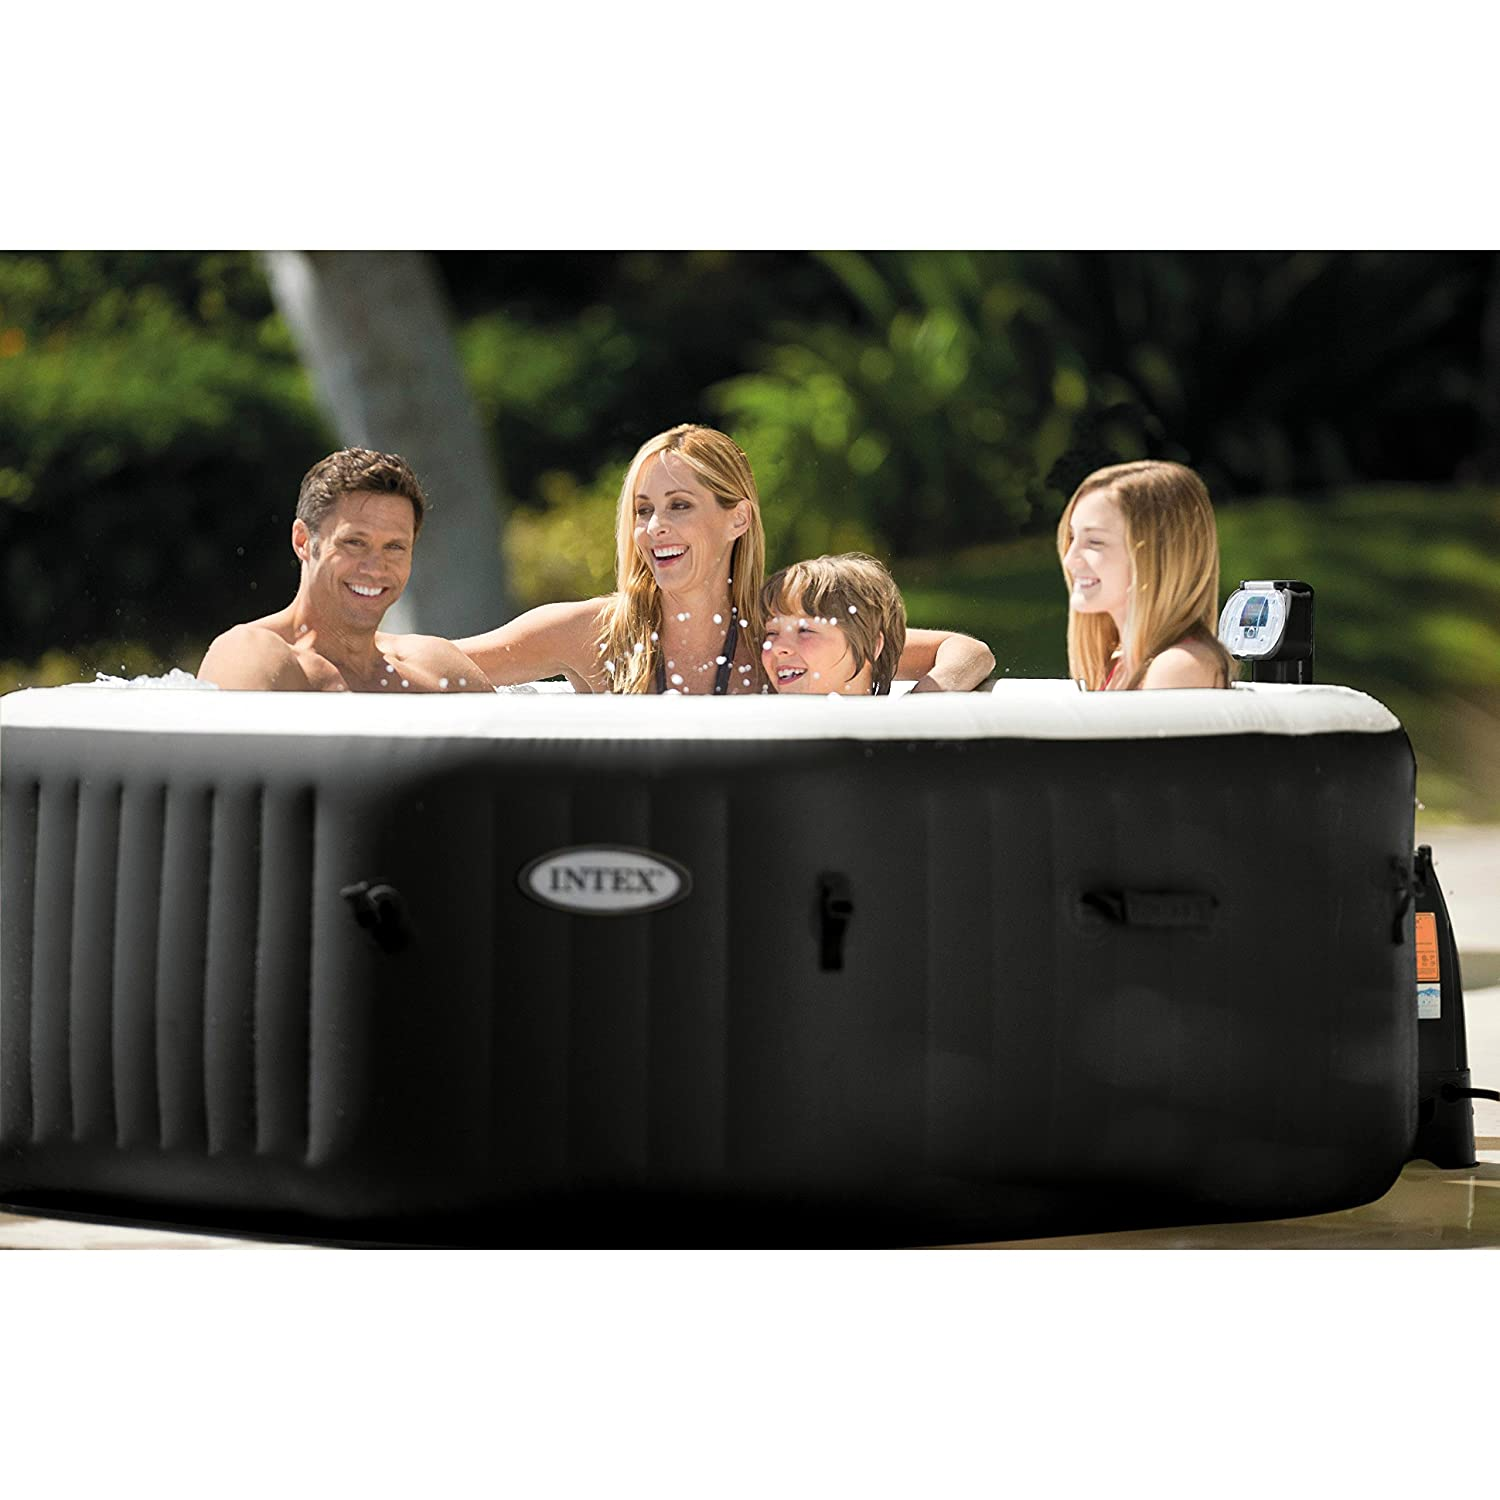 intex purespa hot tub review the pool cleaner expert. Black Bedroom Furniture Sets. Home Design Ideas